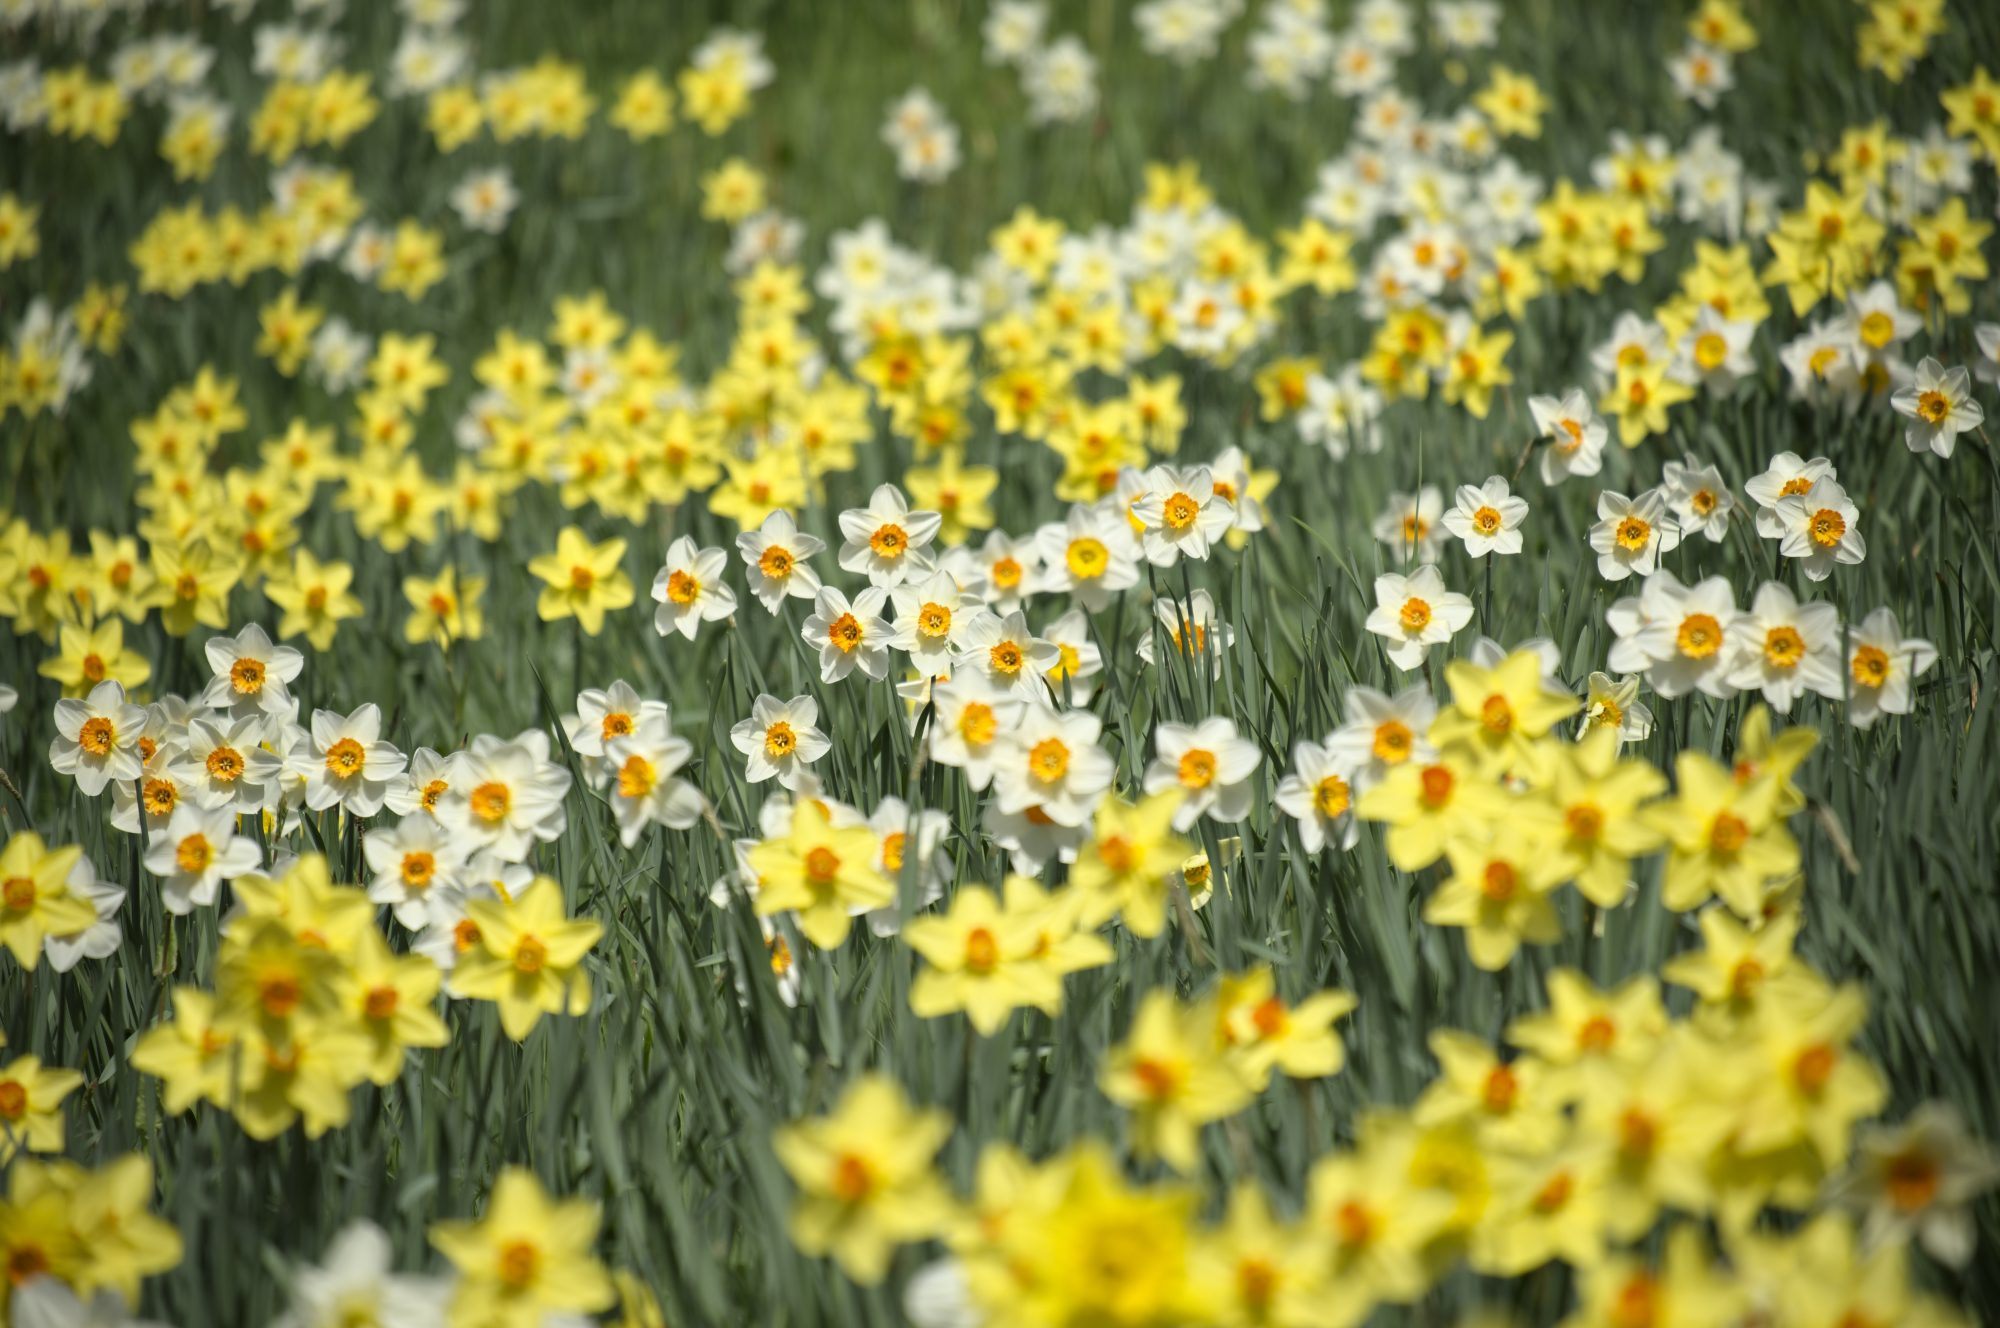 Narcissus Field of Daffodils